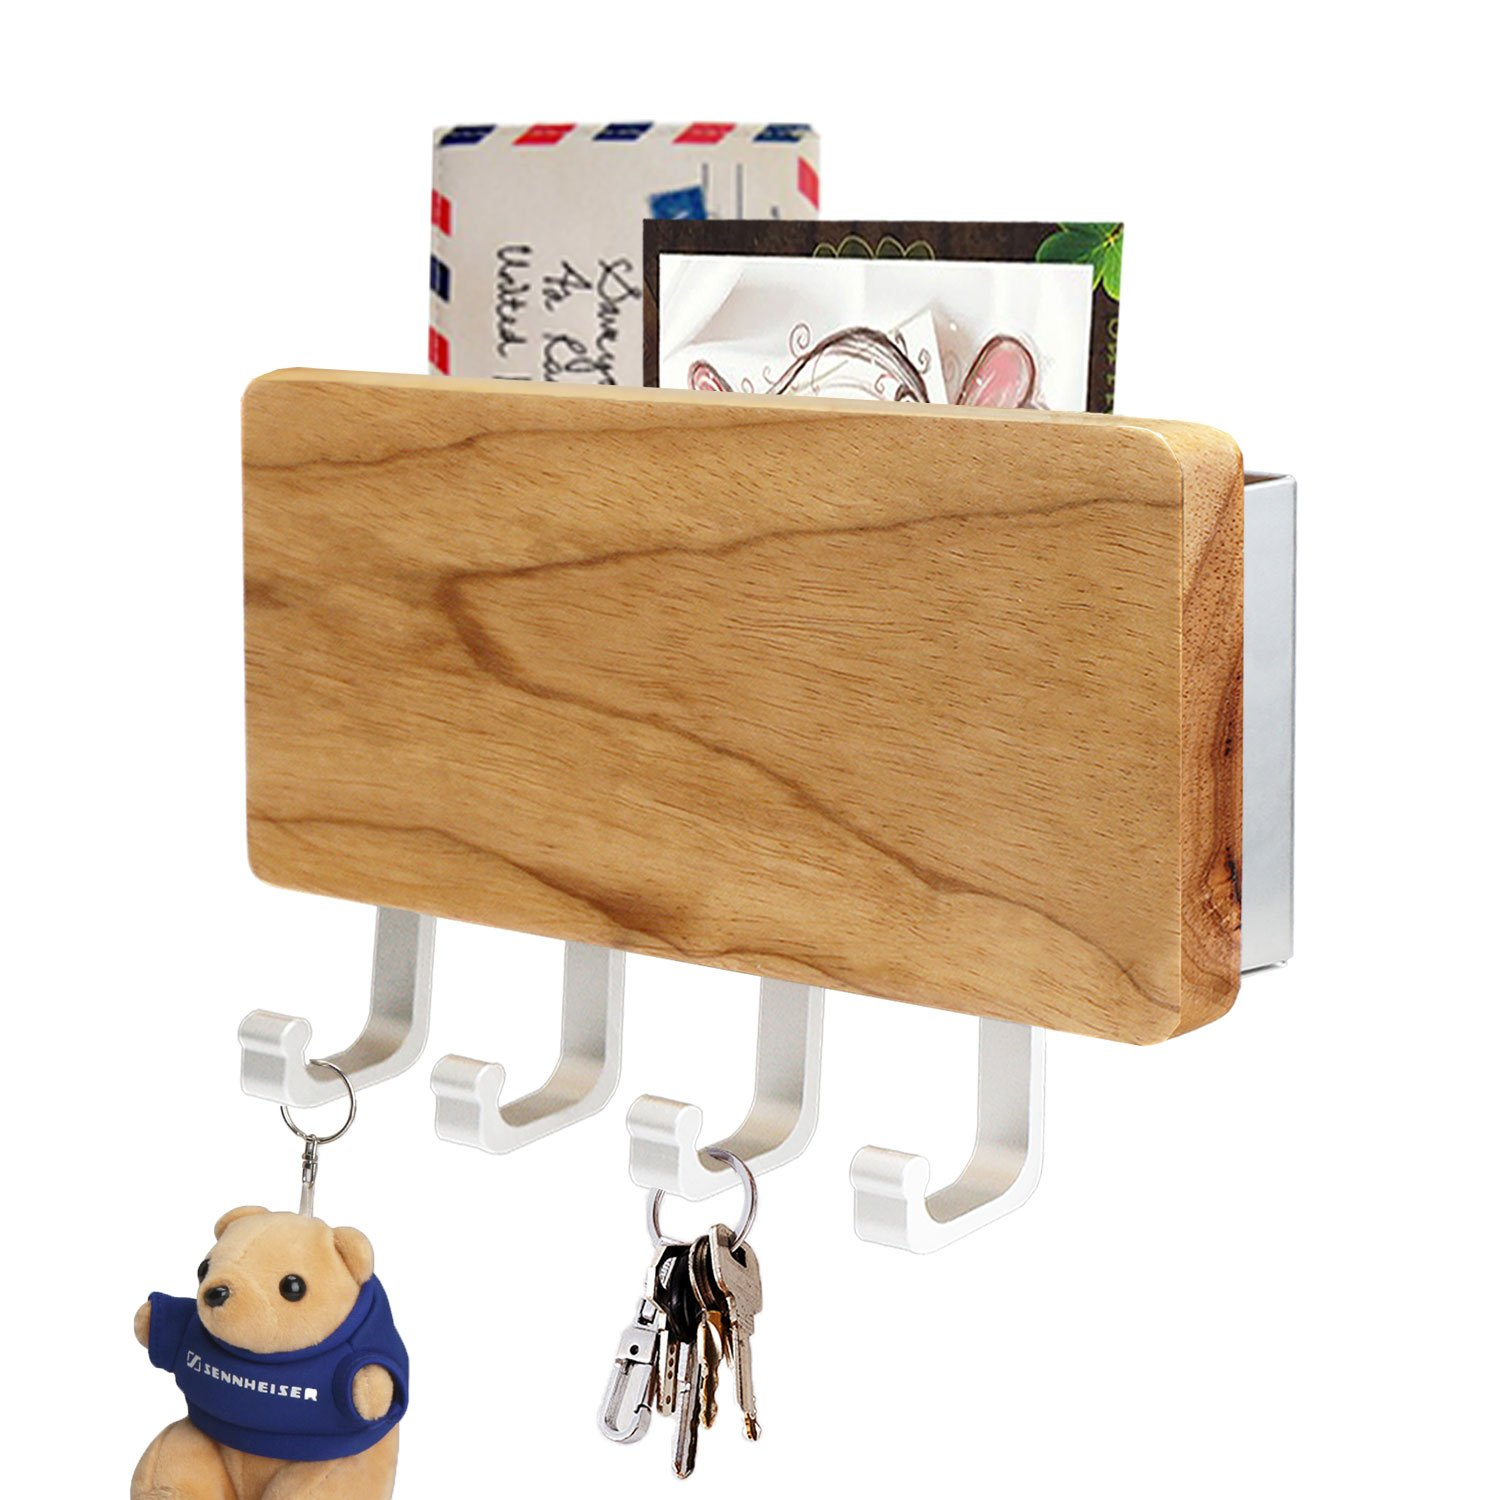 Key Holder, Segarty Decorative Wooden Key Chain Rack Hanger Wall Mounted with 4 Hooks, Multiple Mail and Key Holder Organizer for Door, Entryway, Hallway, Kitchen 510048_SA